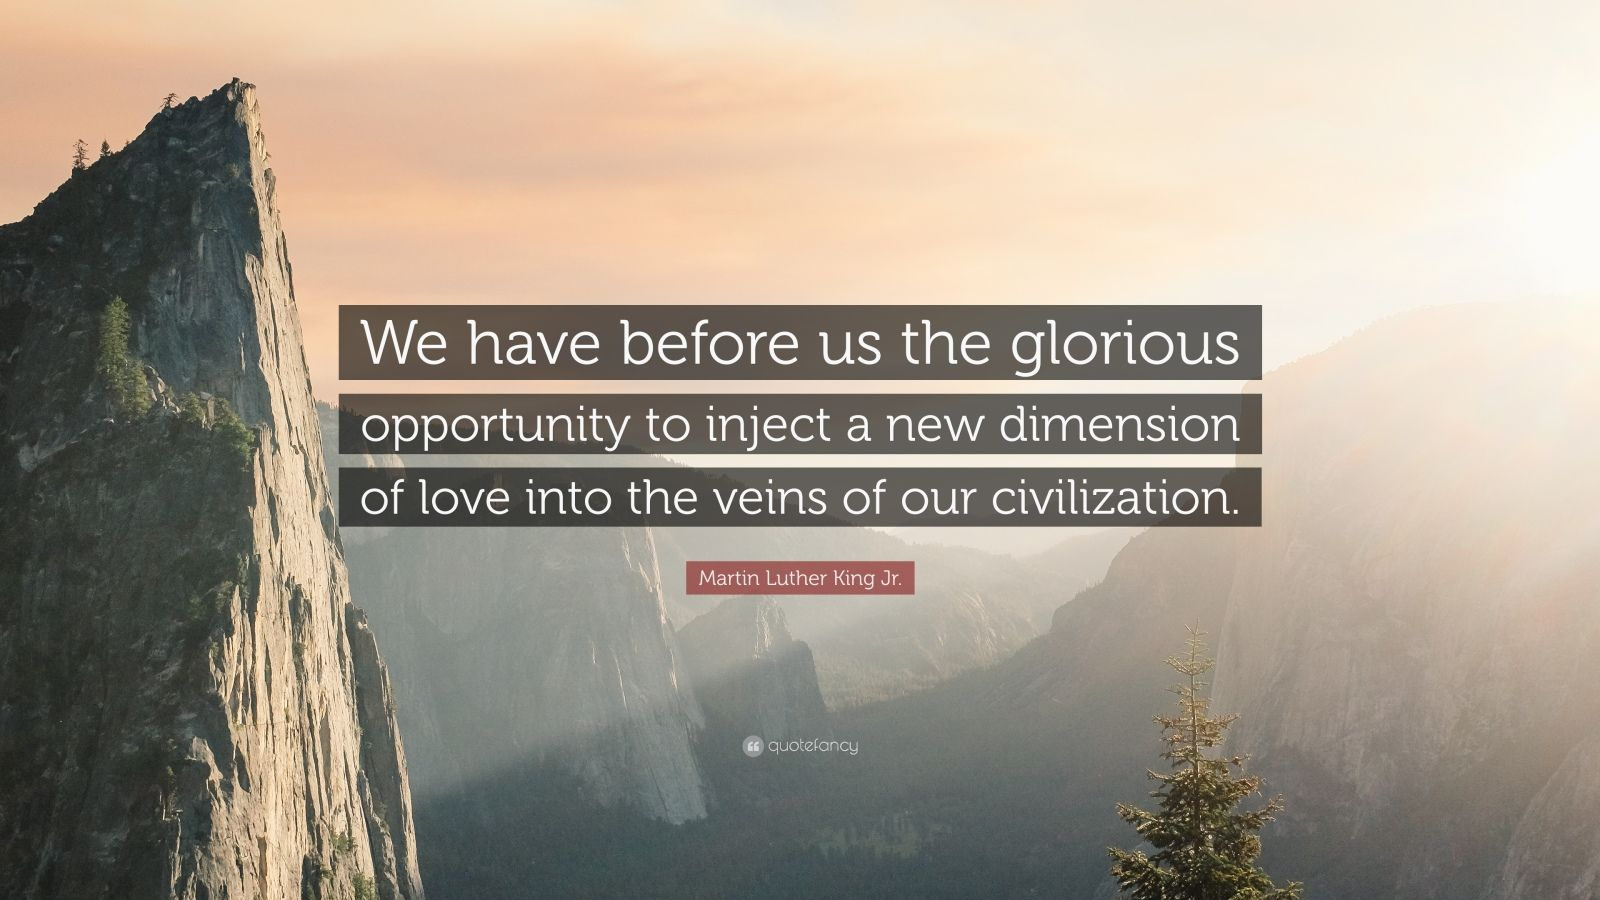 """Martin Luther King Jr. Quote: """"We have before us the glorious opportunity to inject a new dimension of love into the veins of our civilization."""""""